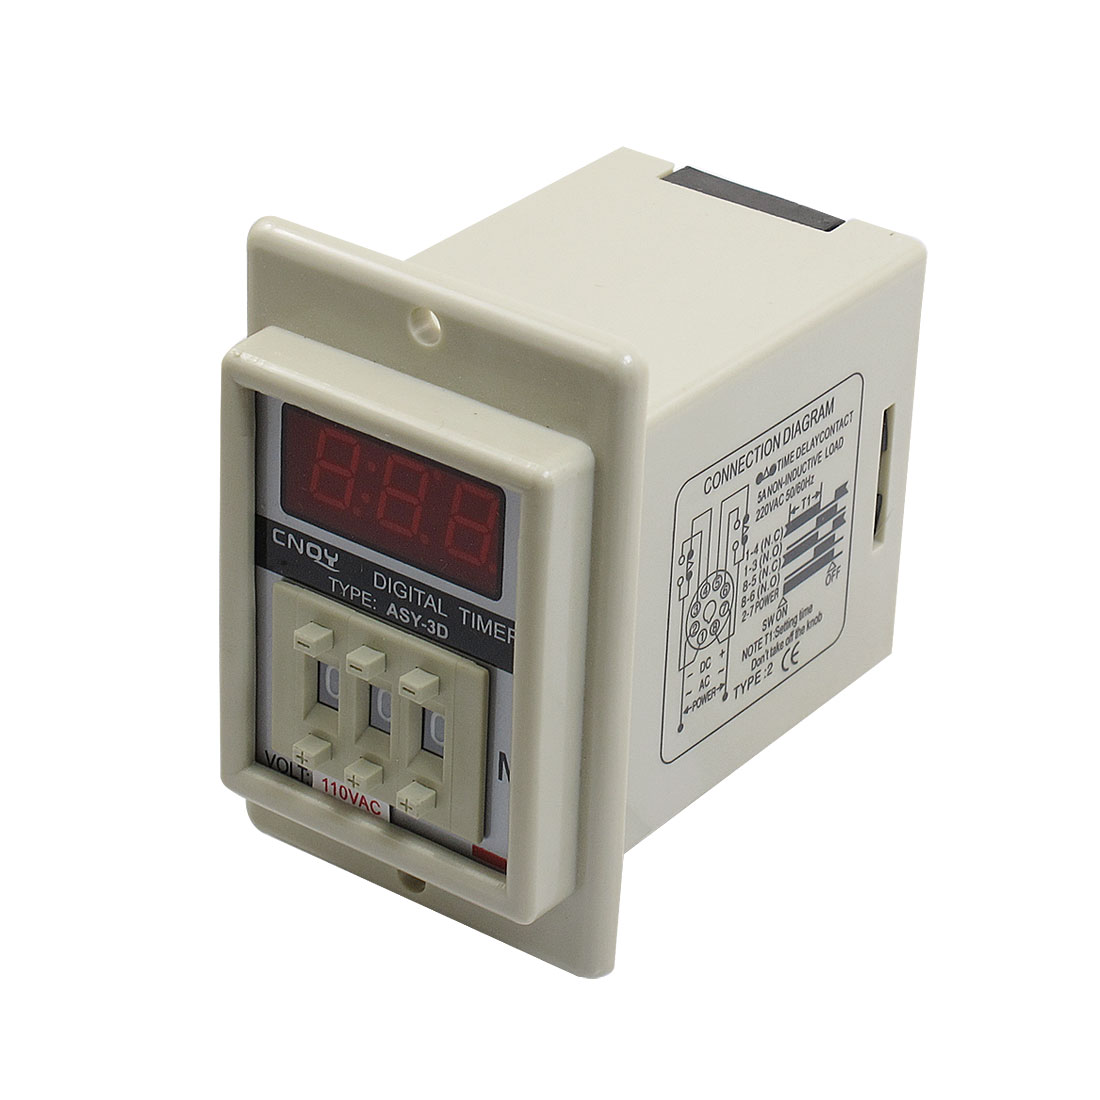 White AC 110V Power on Delay Timer Time Relay 1-999 Minute 8 Pins ASY-3D